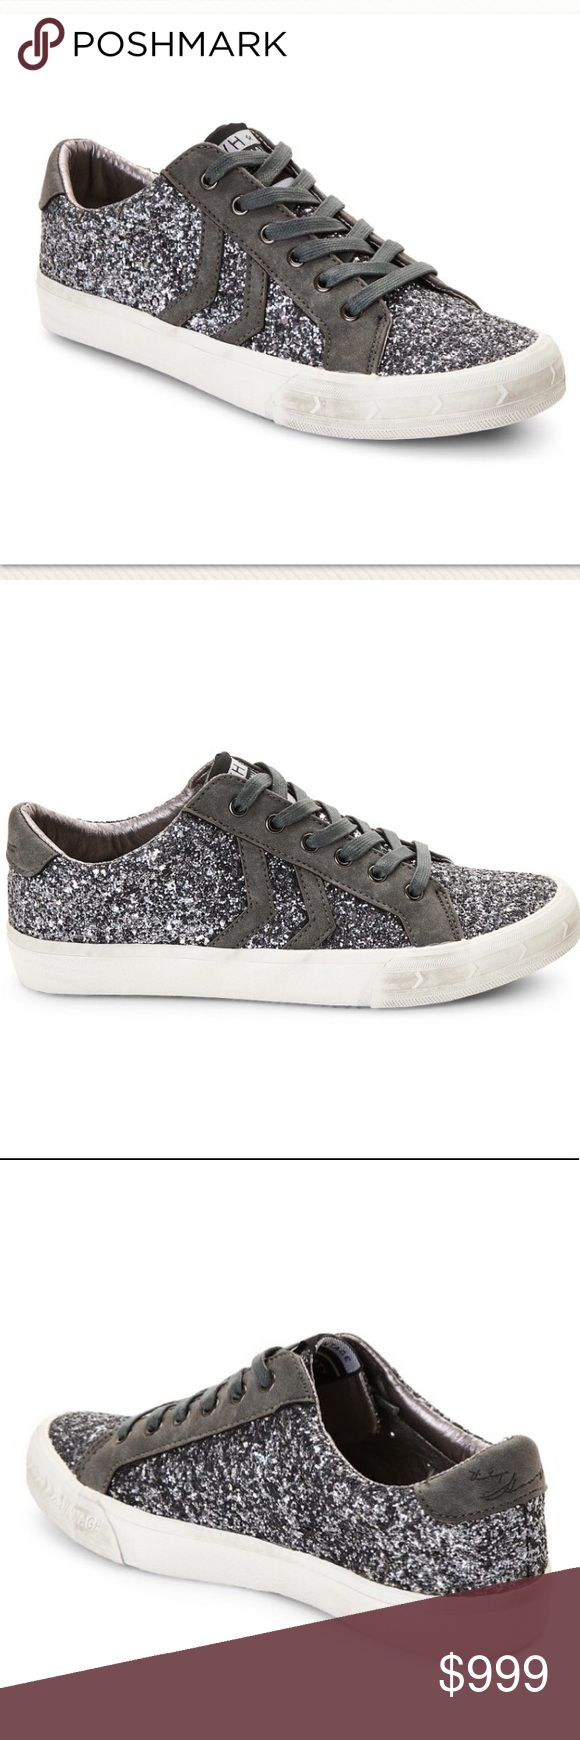 Vintage Havana Pewter Sneakers Authentic new with box Vintage Havana Future Sparkle Pewter Liw Top Sneakers. Glitter upper, round toe, faux suede overlays, lace up closure Interior lining, lightly cushioned insole, padded collar, vintage style sole Accompanied by dust bag Man made upper/lining/sole Imported. Women's Size 7. ❗️No Trade❗️ Vintage Havana Shoes Sneakers